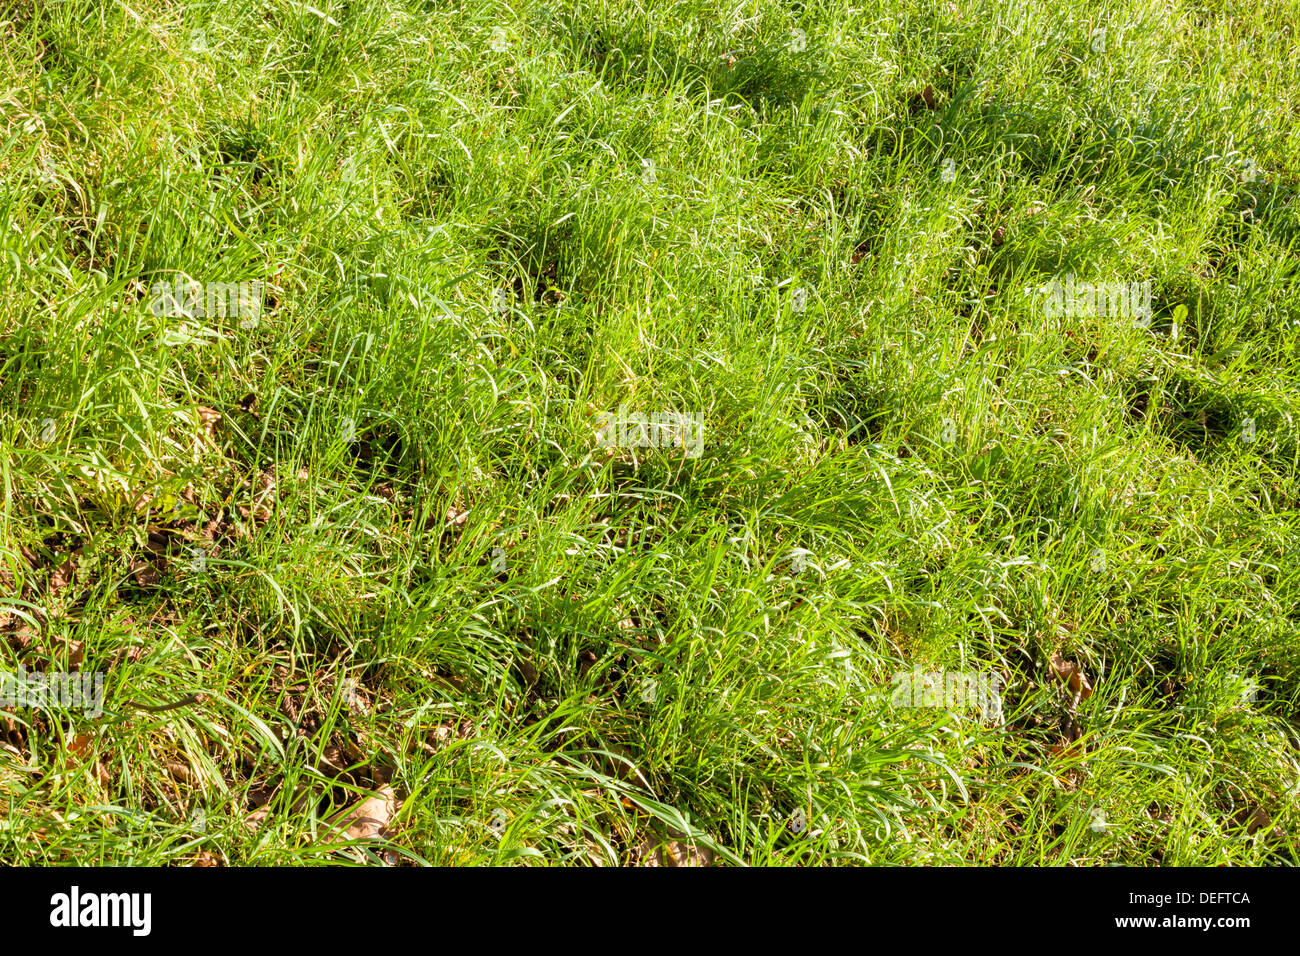 Long uncut grass and dead leaves on an overgrown lawn on uneven ground - Stock Image